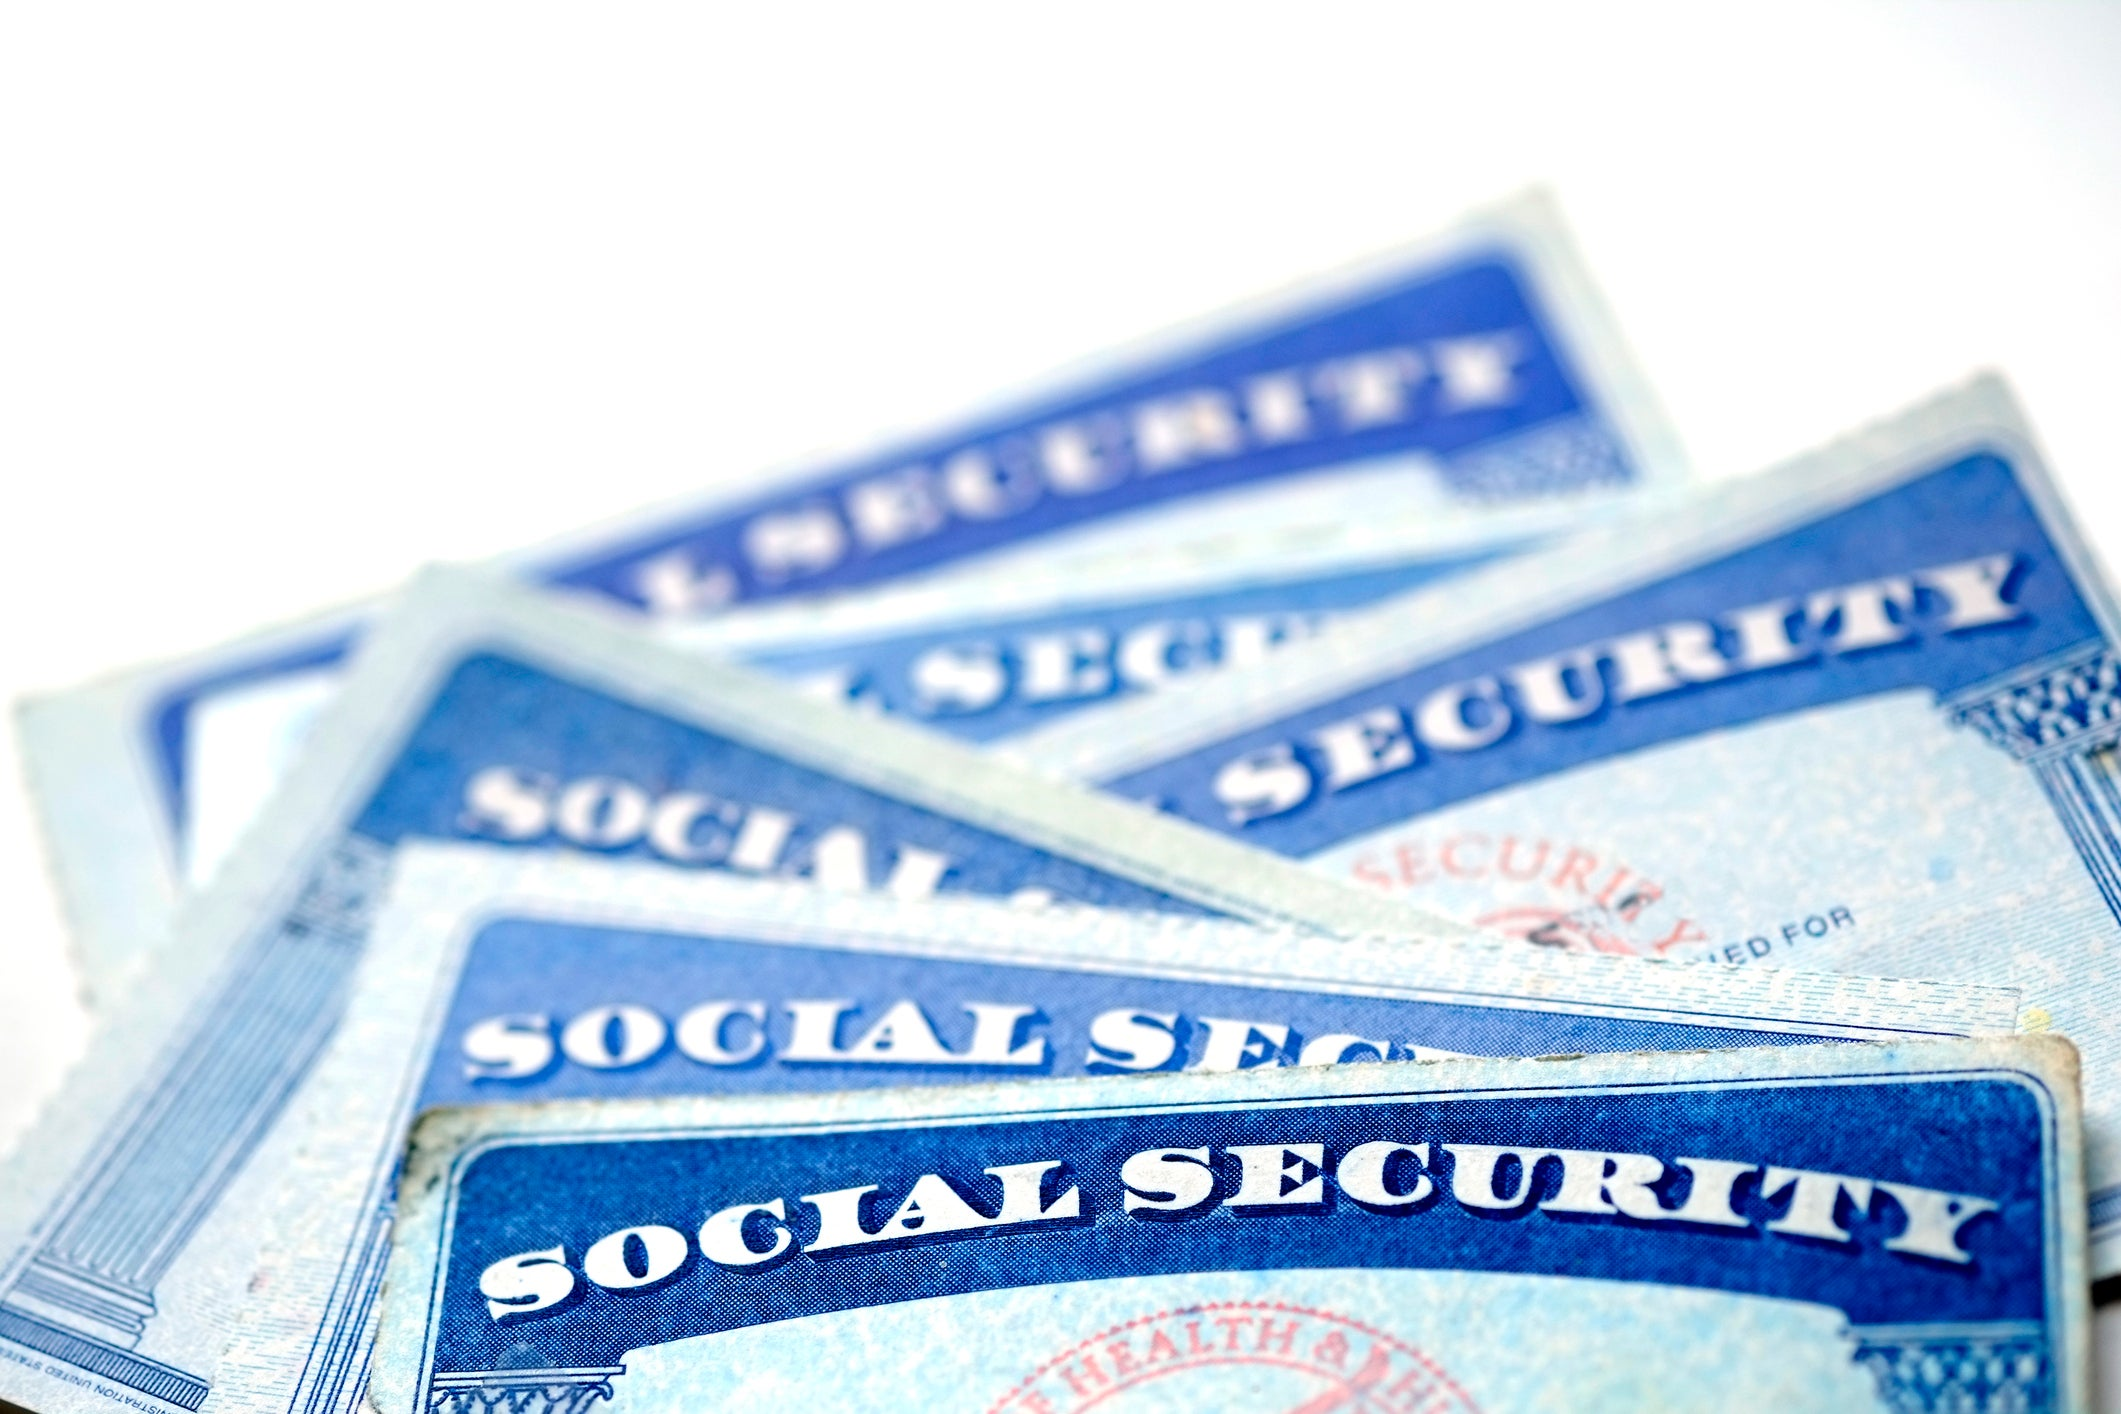 Here's Why You Should Write Off Social Security | The Motley Fool